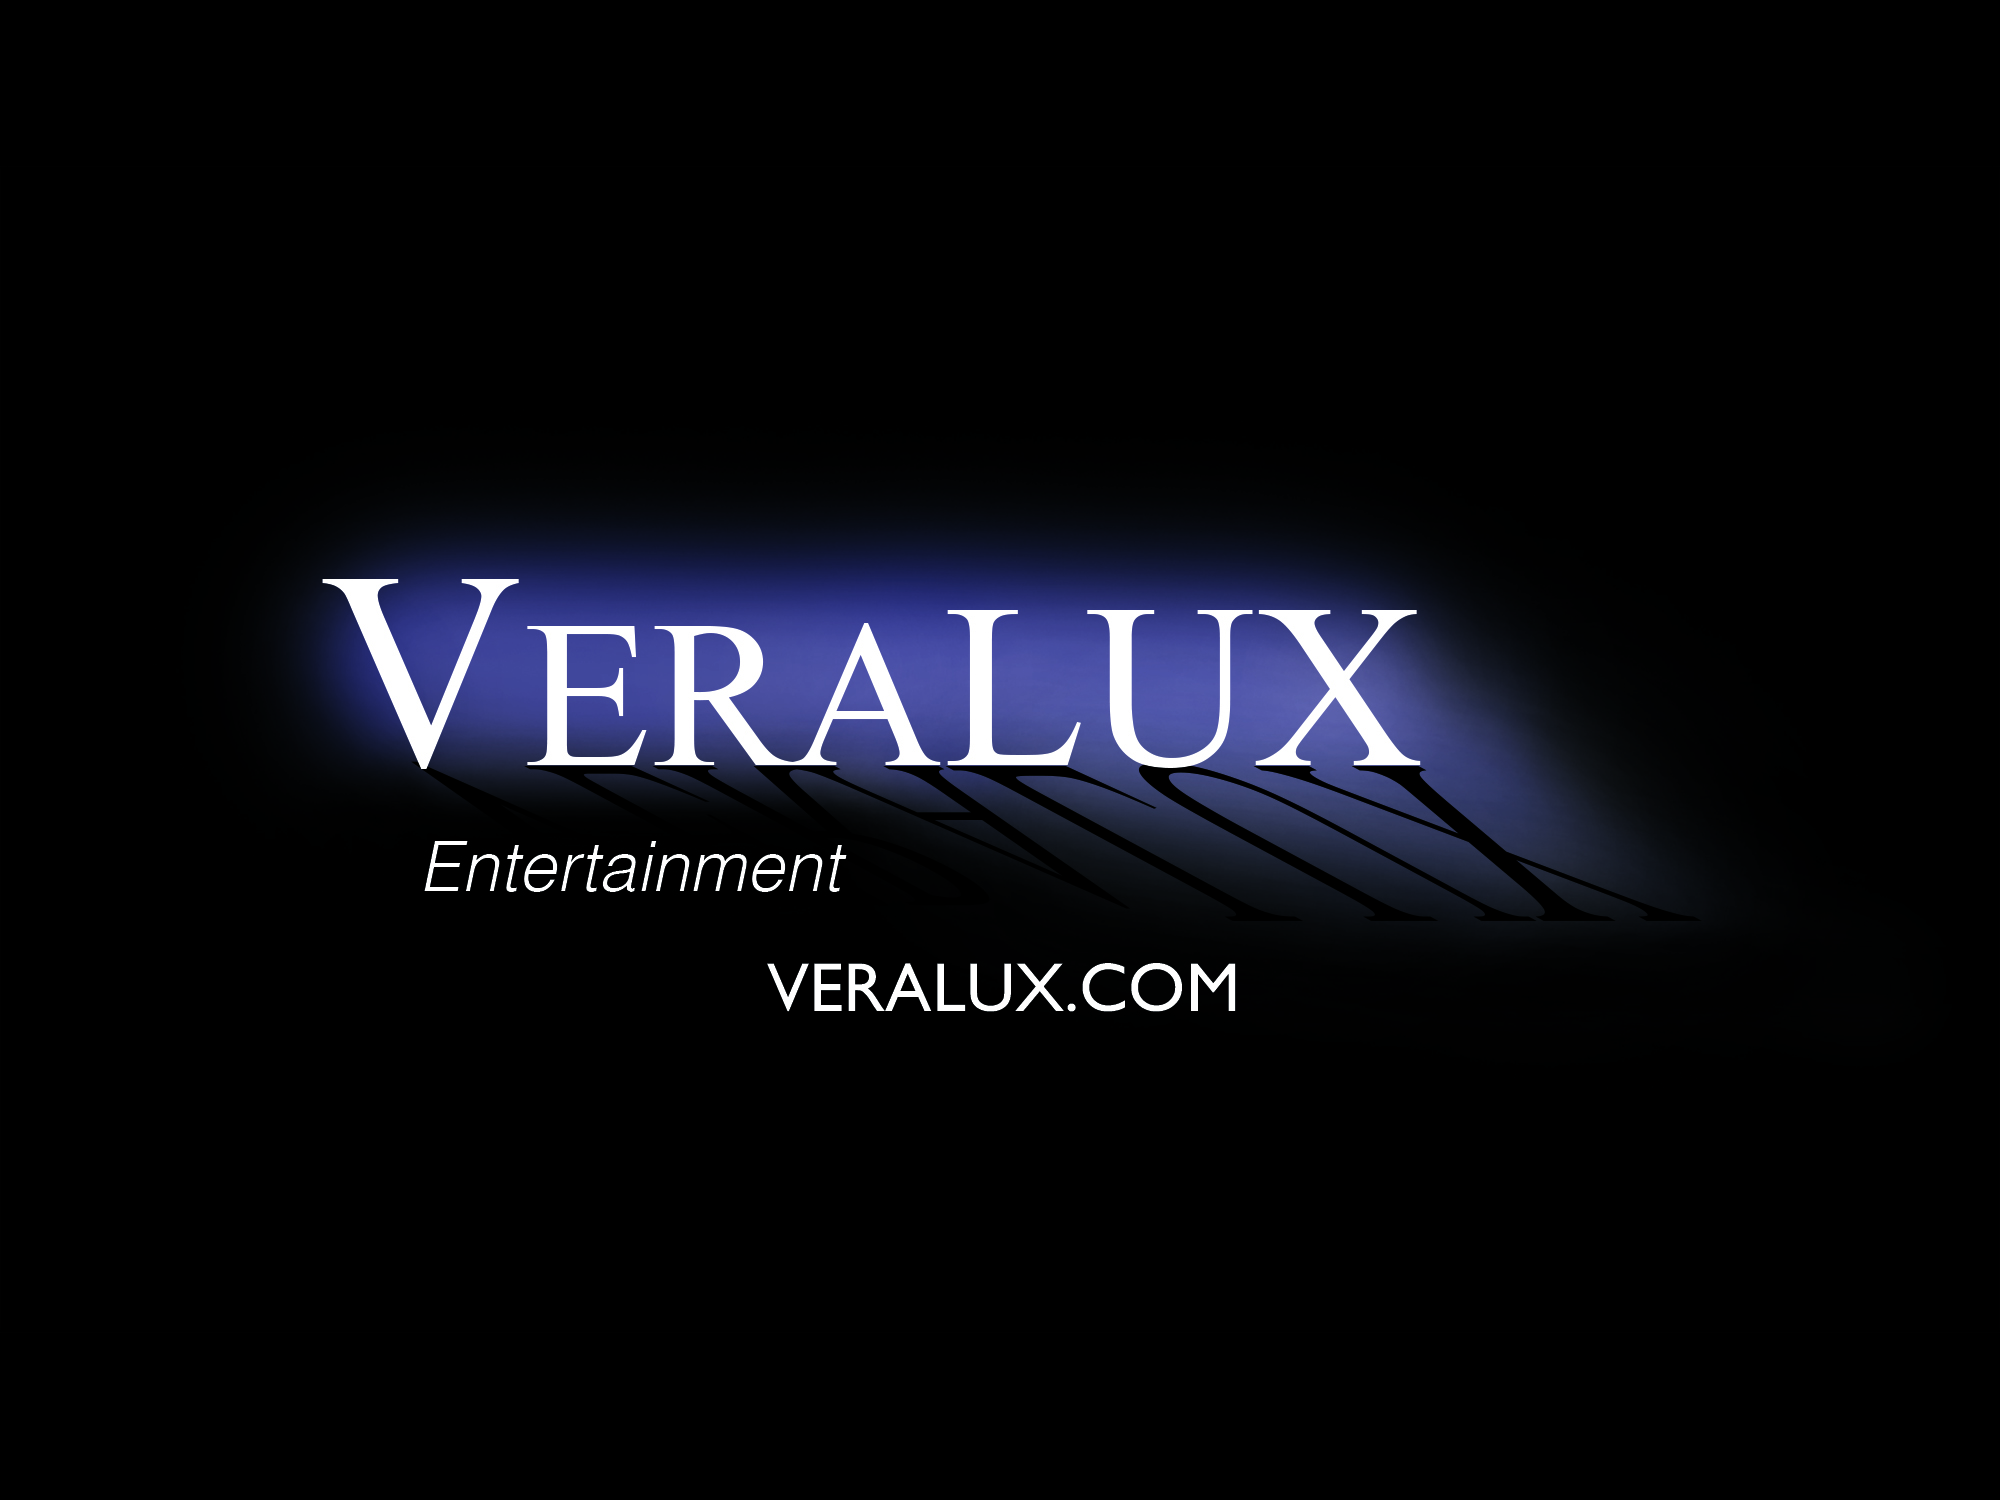 Veralux Entertainment